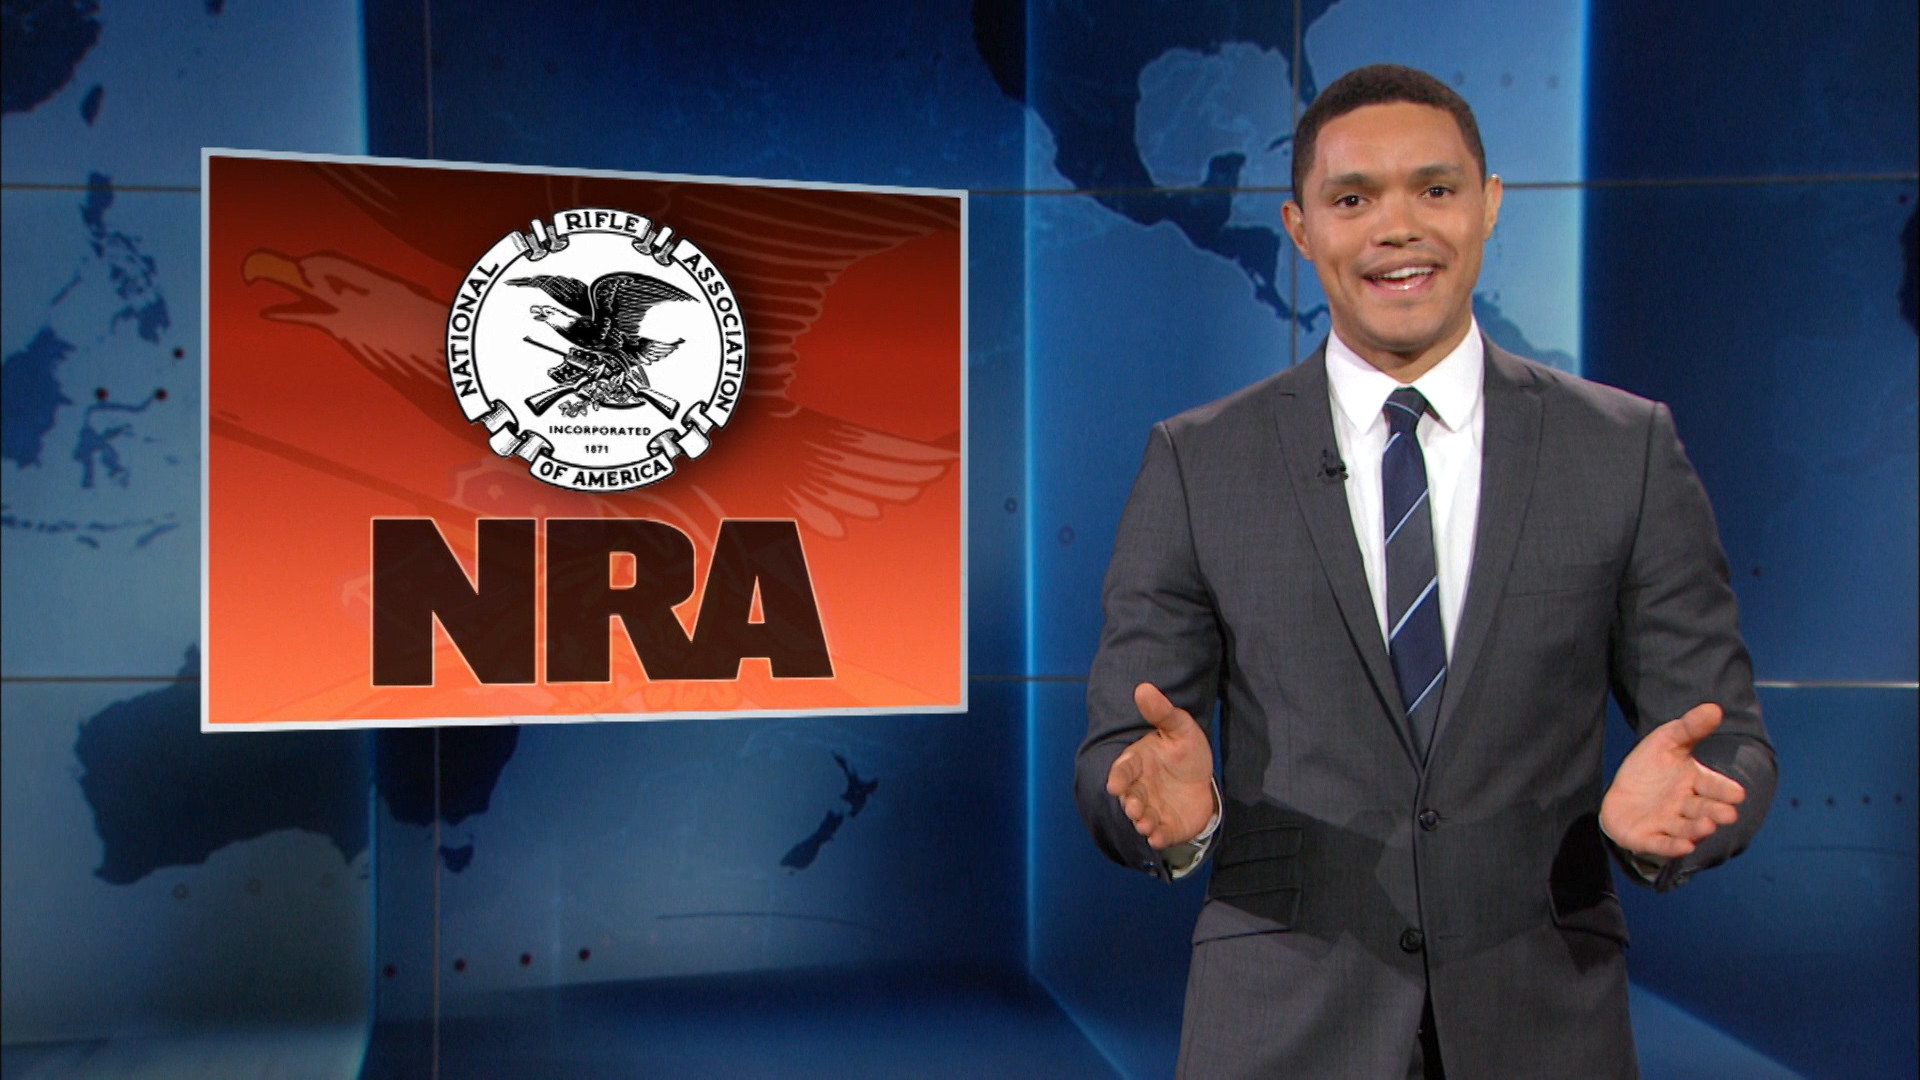 THE DAILY SHOW - PROTECTING THE NRA FROM OPEN-CARRY CAMERAS